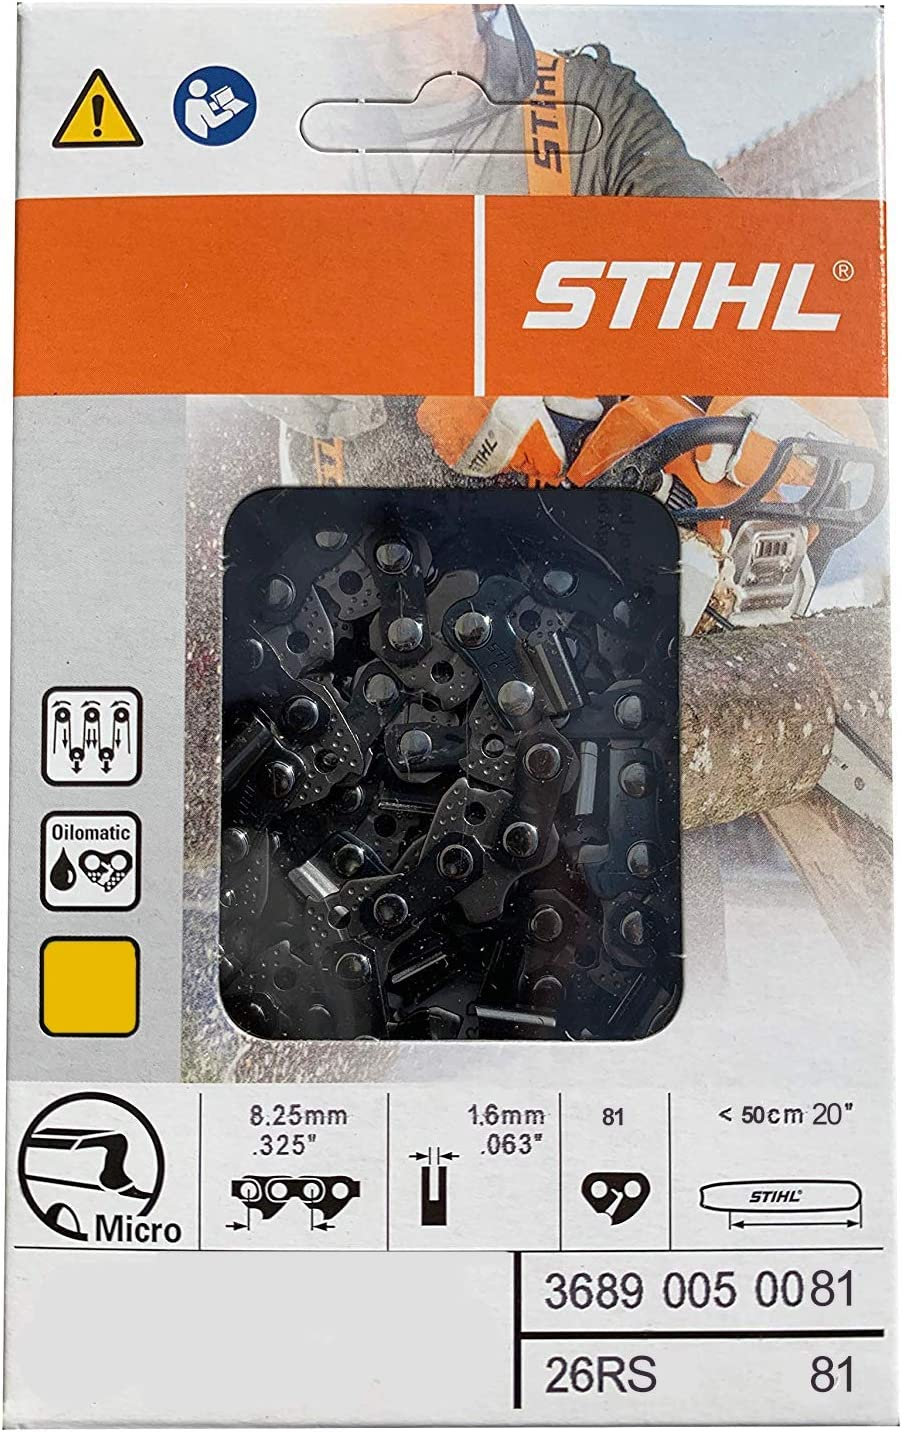 6. Stihl 26RS Chainsaw Chain